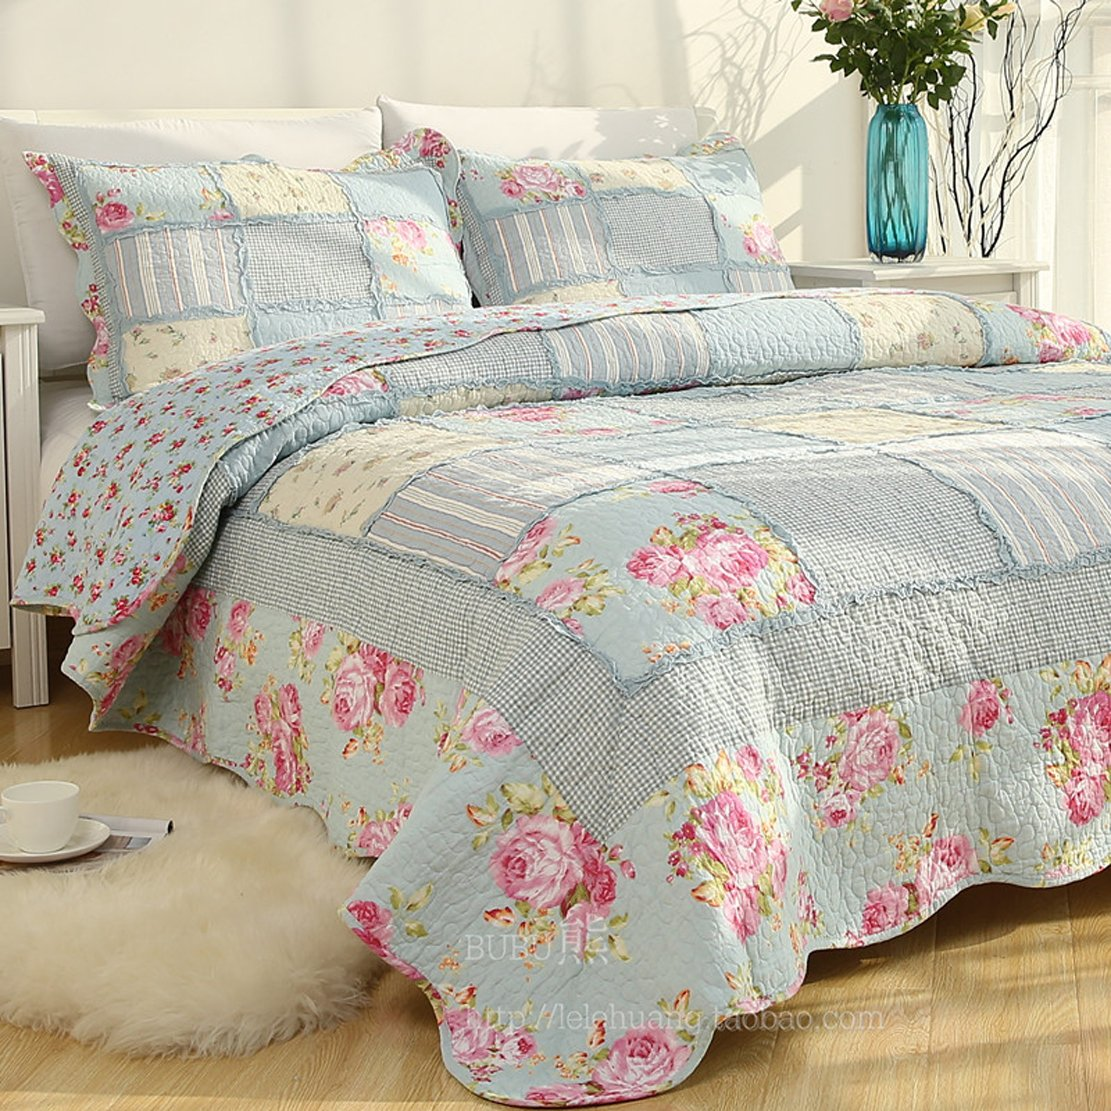 MAXYOYO Cotton Blue Rose Patchwork Comforter Set for Girls,Beautiful Plaid Floral Design Quilt Throw,Cotton Bedspreads Full/Queen Size